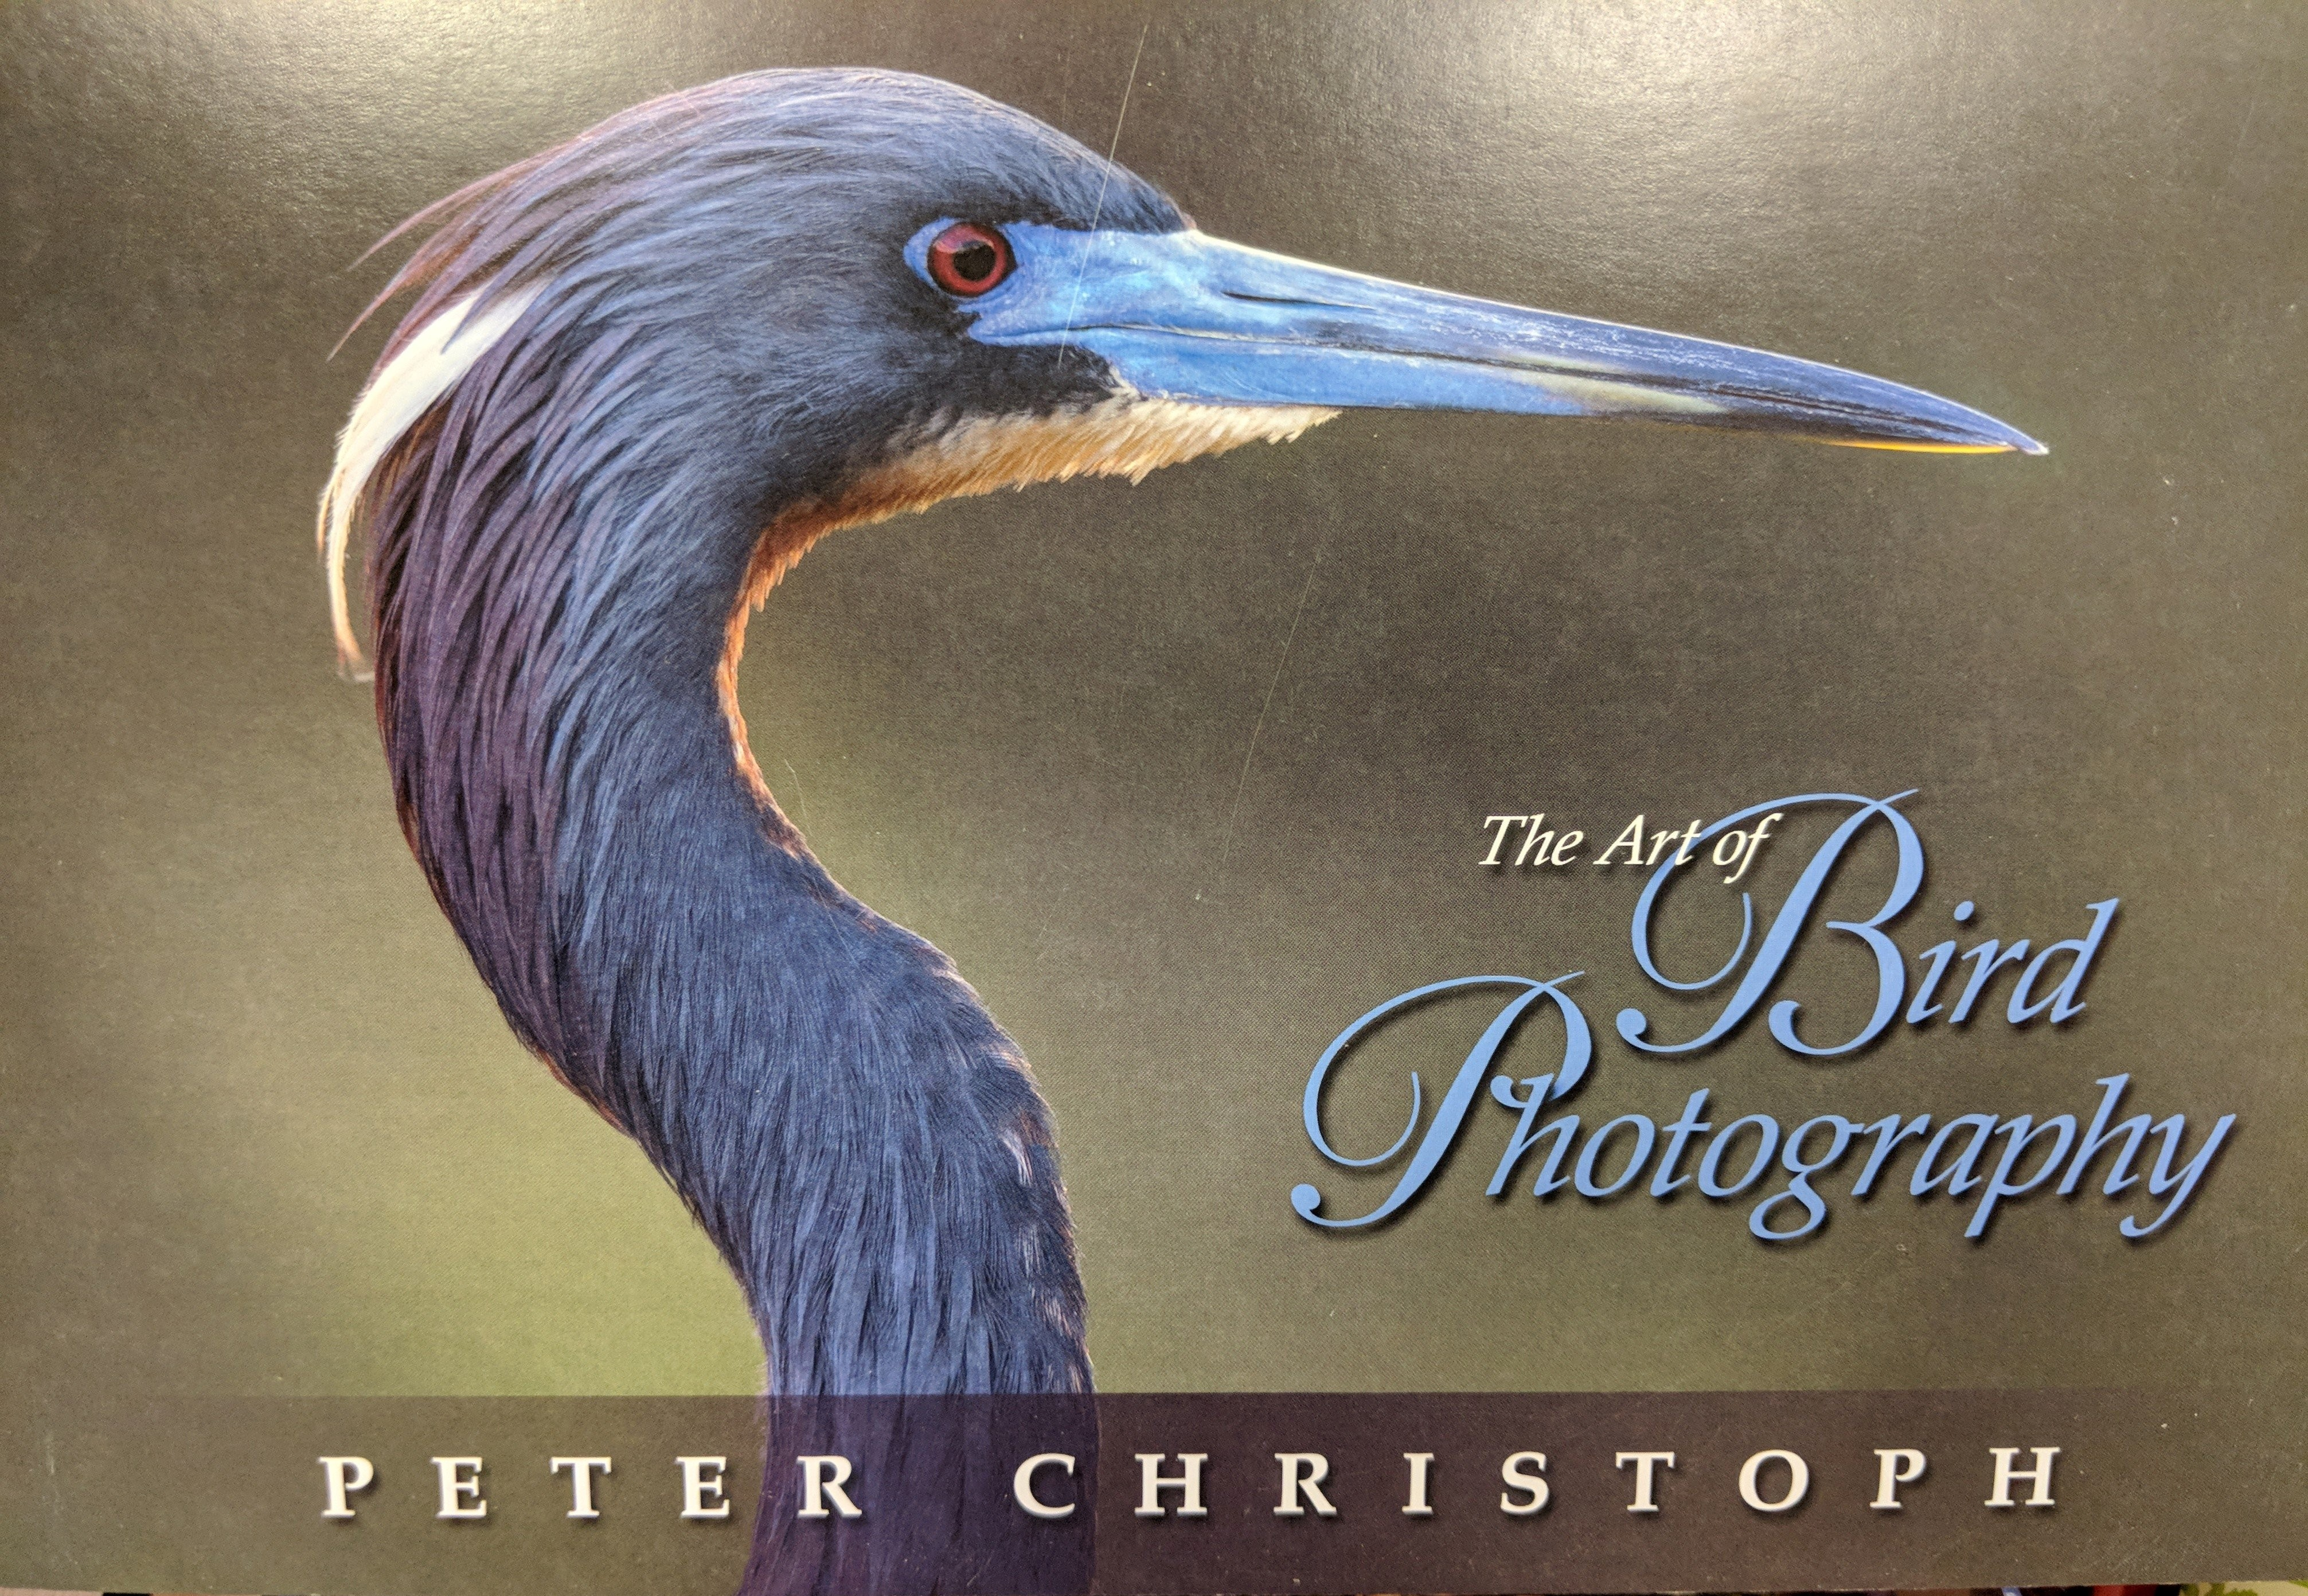 Peter Christoph's new book, The Art of Bird Photography